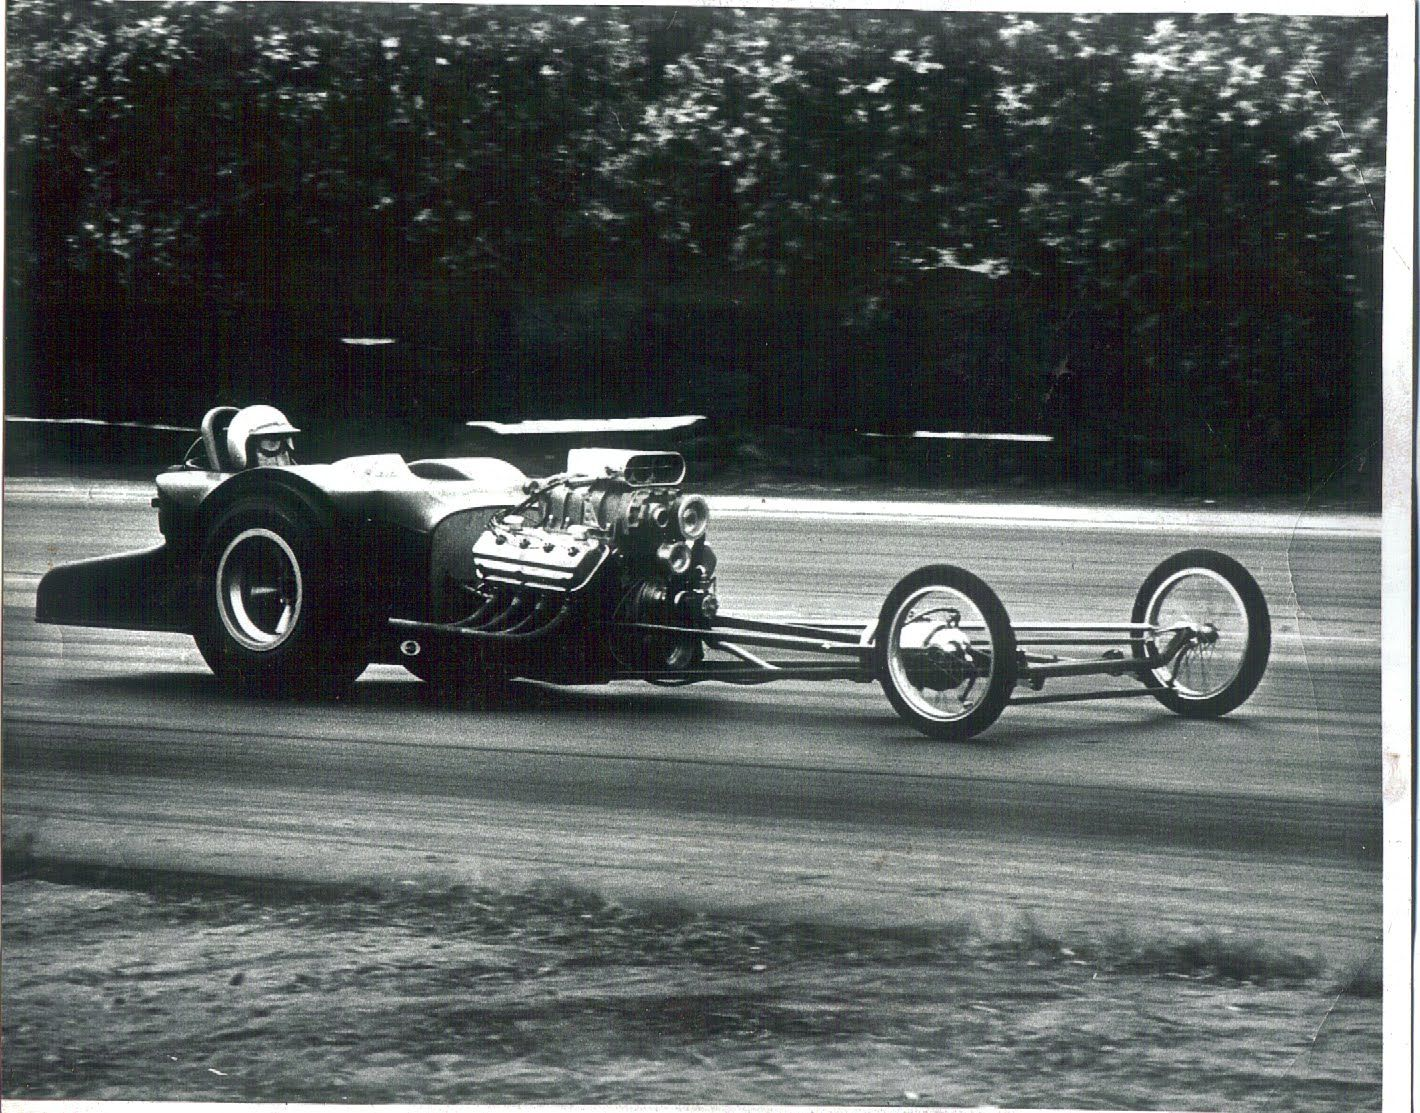 Dragster | Old Dragster | Pinterest | Funny cars, Cars and Wheels